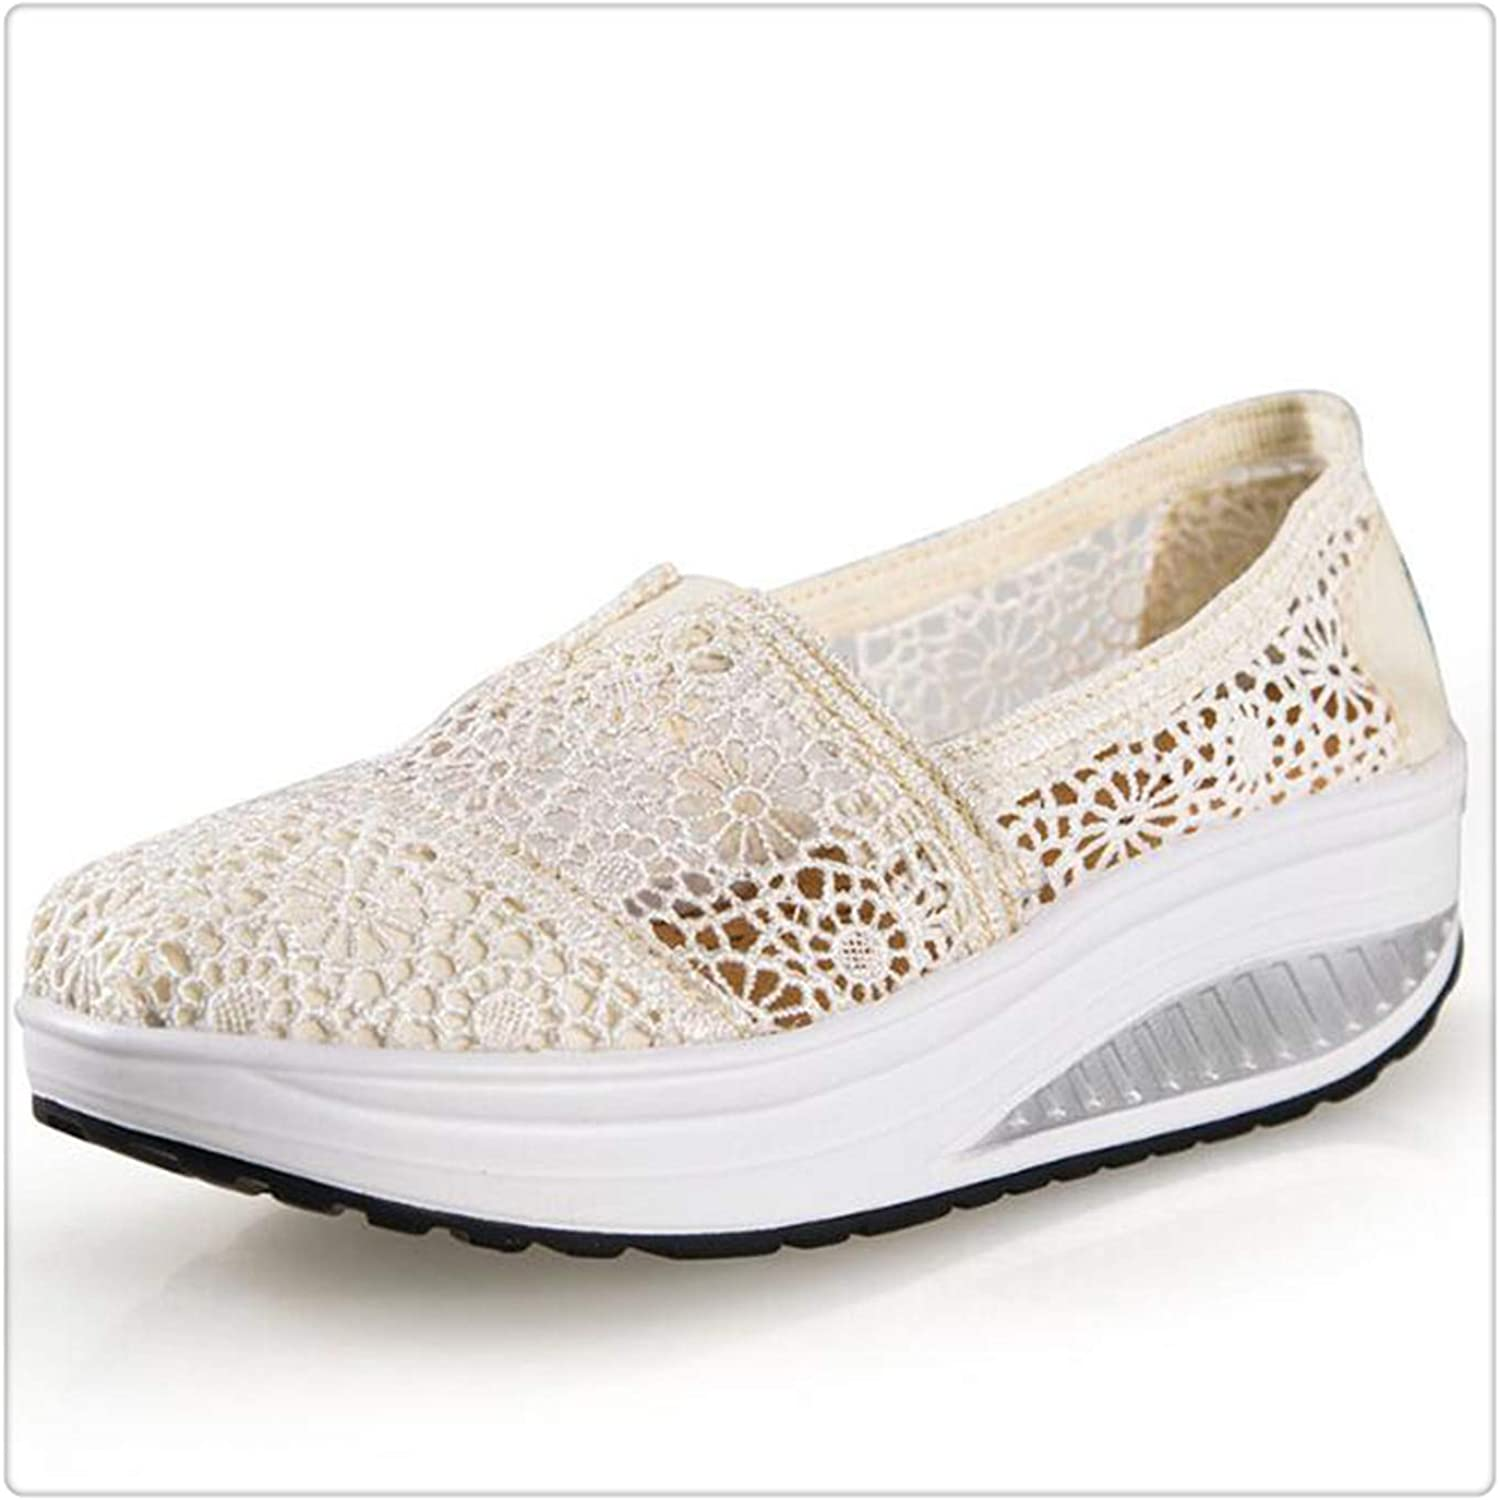 HANGGE& Women Casual shoes 2017 Spring Summer Breathable lace Canvas shoes Women Platform Slip-on Solid Wedges shoes Beige 6